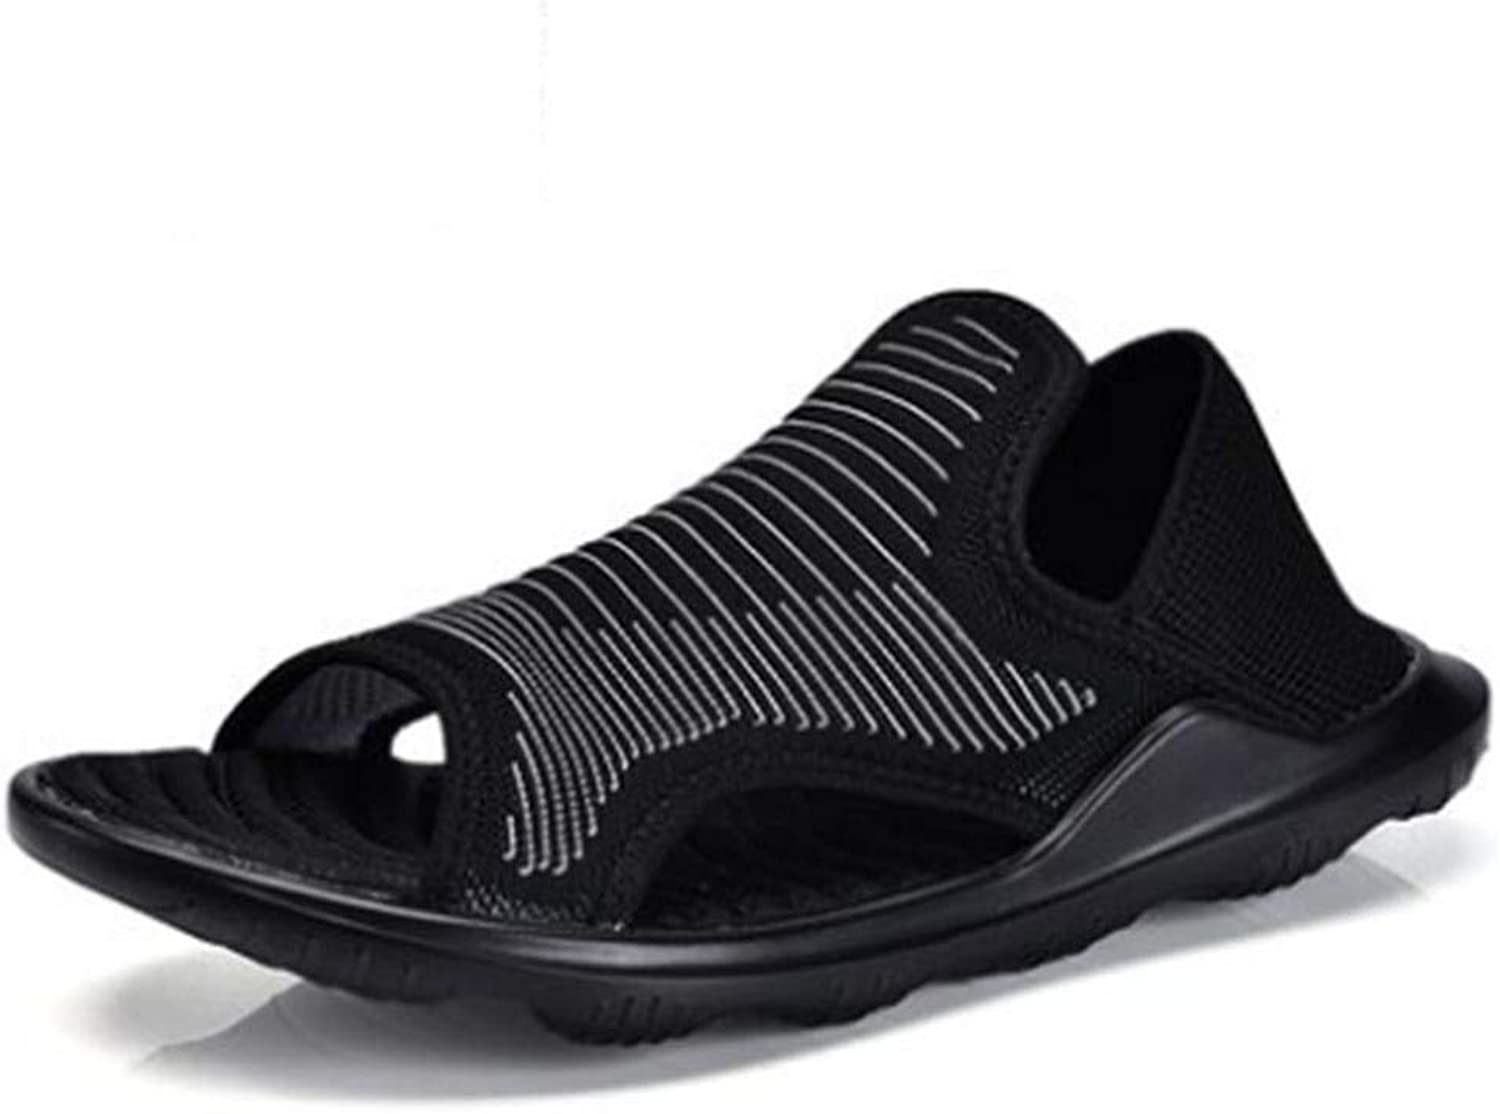 Fuxitoggo Beach shoes Men's Mesh Breathable Outdoor Sandals Lightweight Comfort Slippers (color   UK 6.5, Size   White)